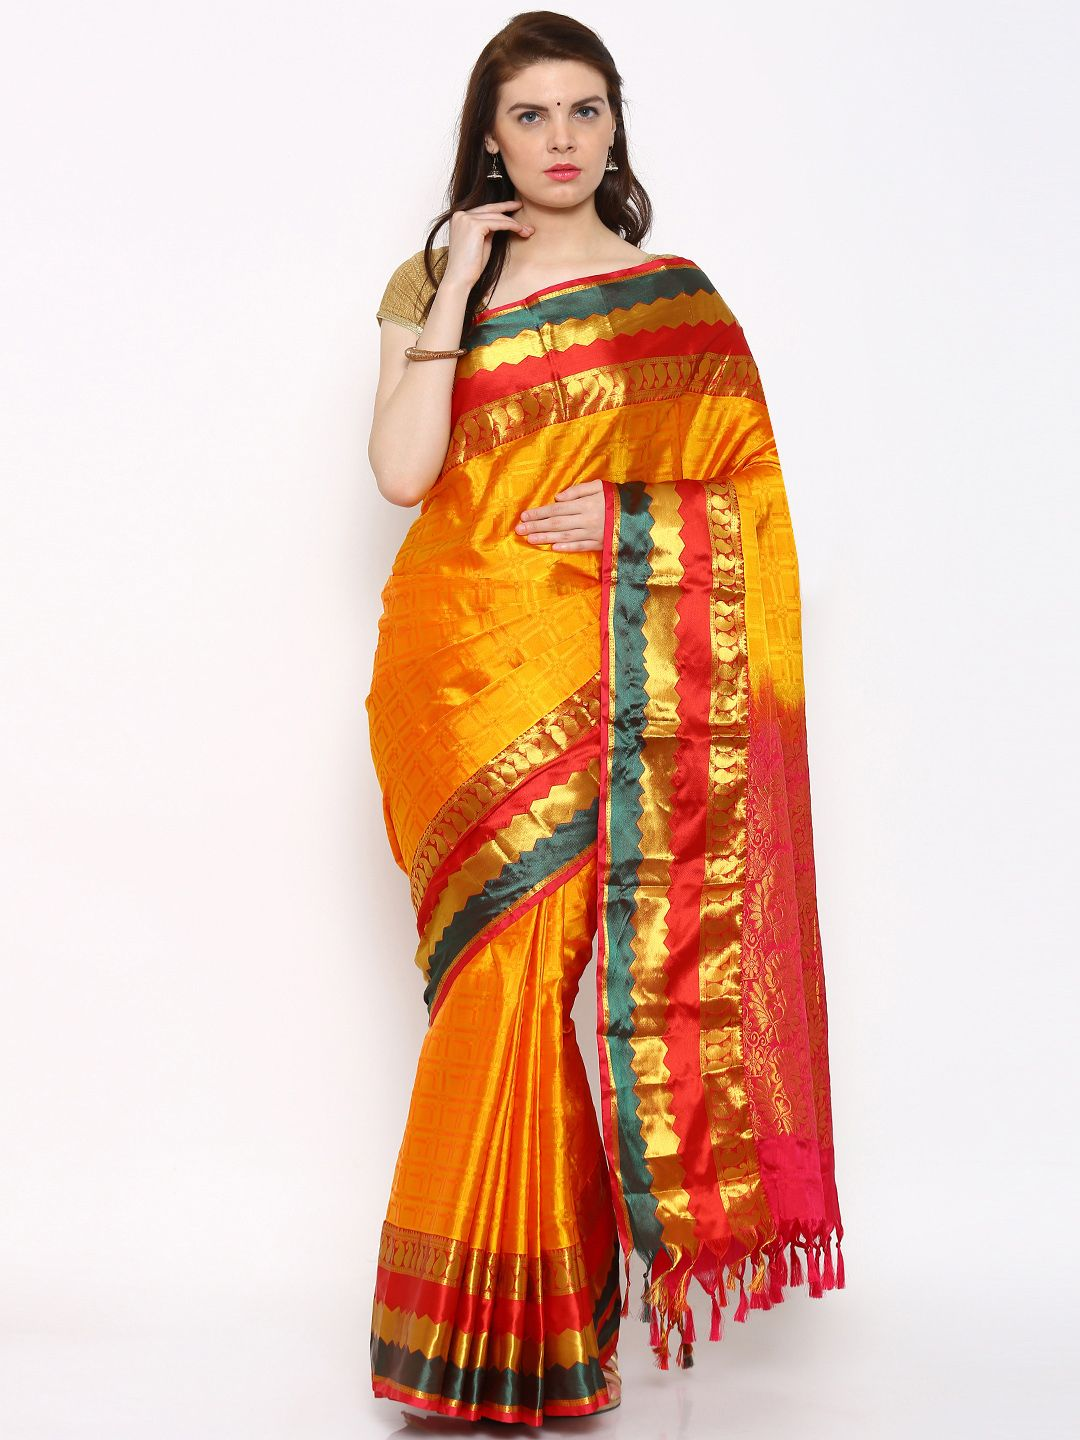 f08b7710a4 The Chennai Silks Classicate Orange Kanjeevaram Silk Saree #Saree ...